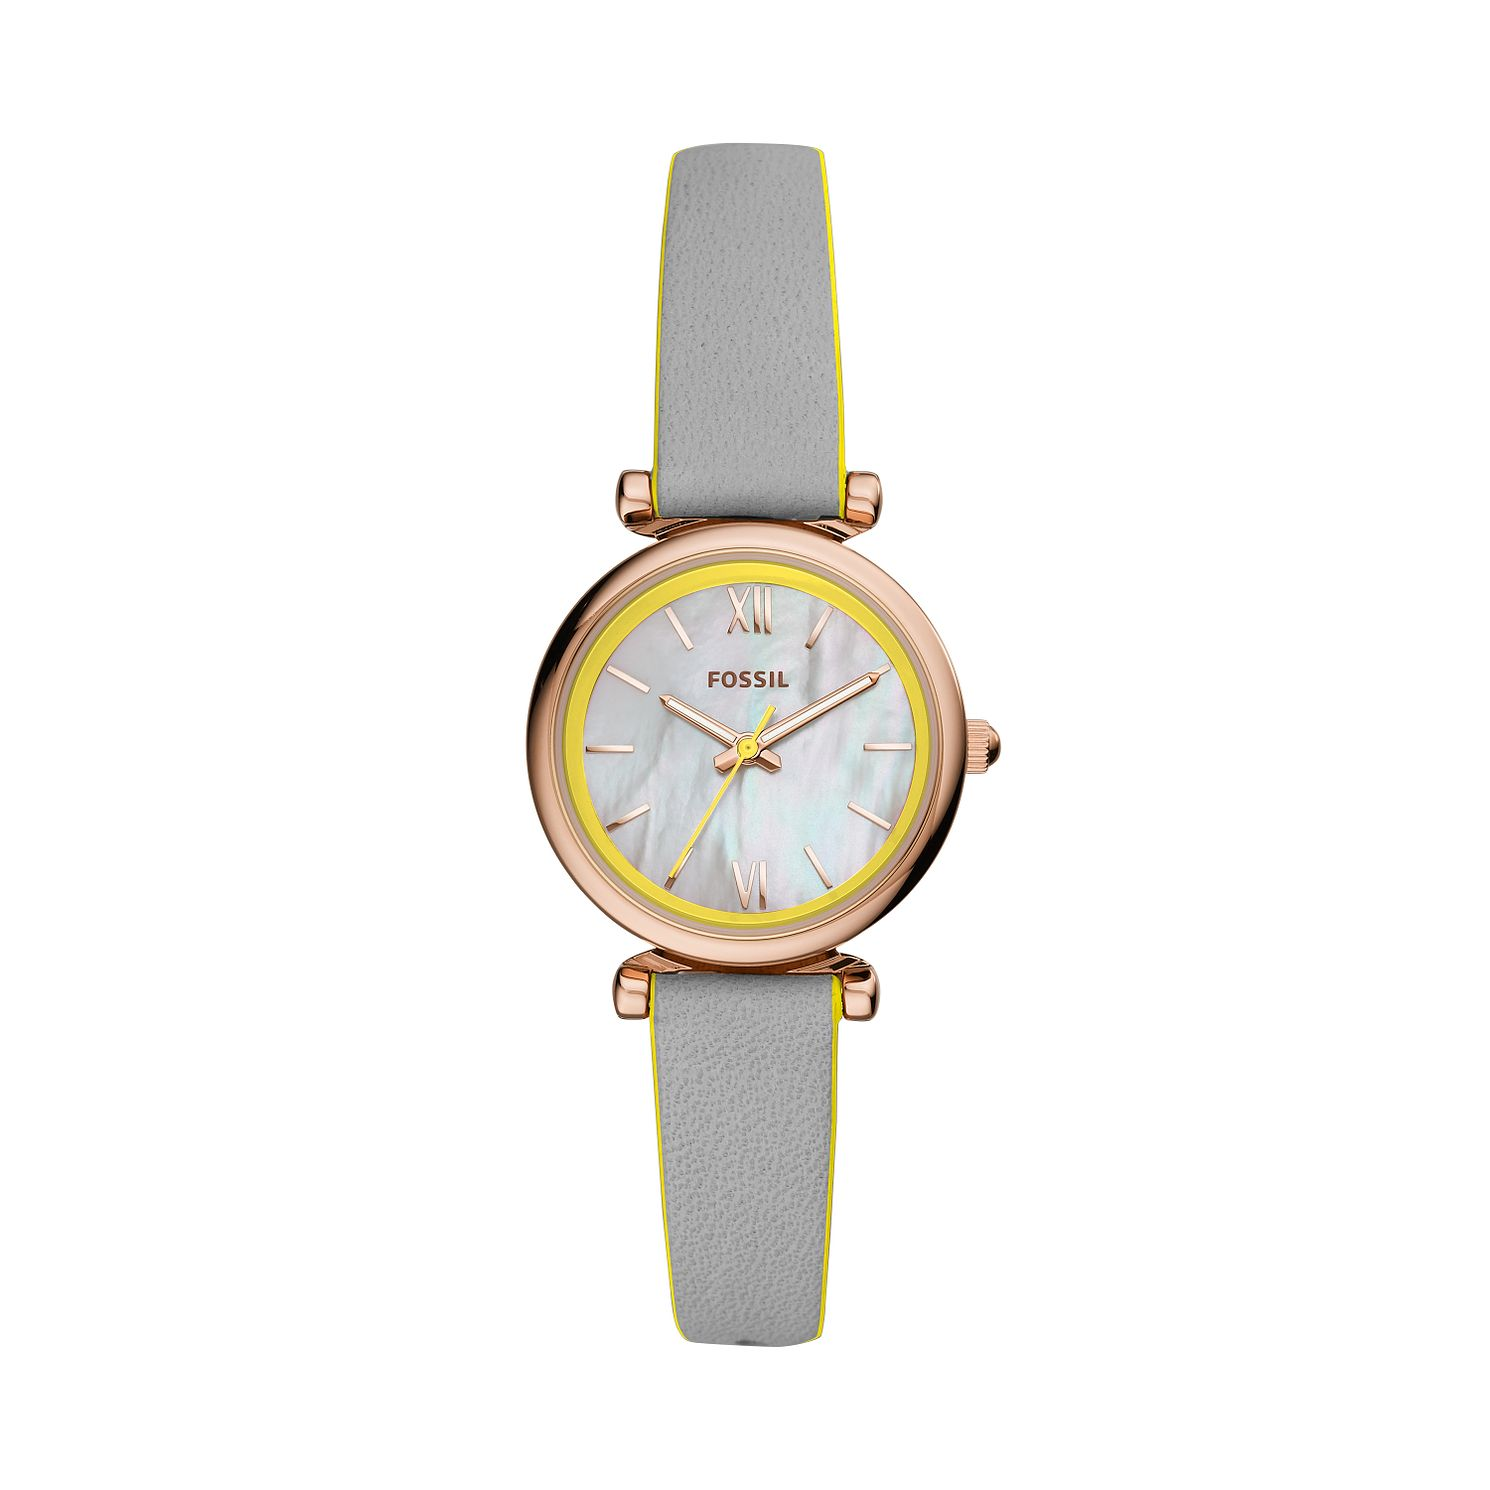 Fossil Ladies' Carlie Grey Leather Strap Watch - Product number 4851641